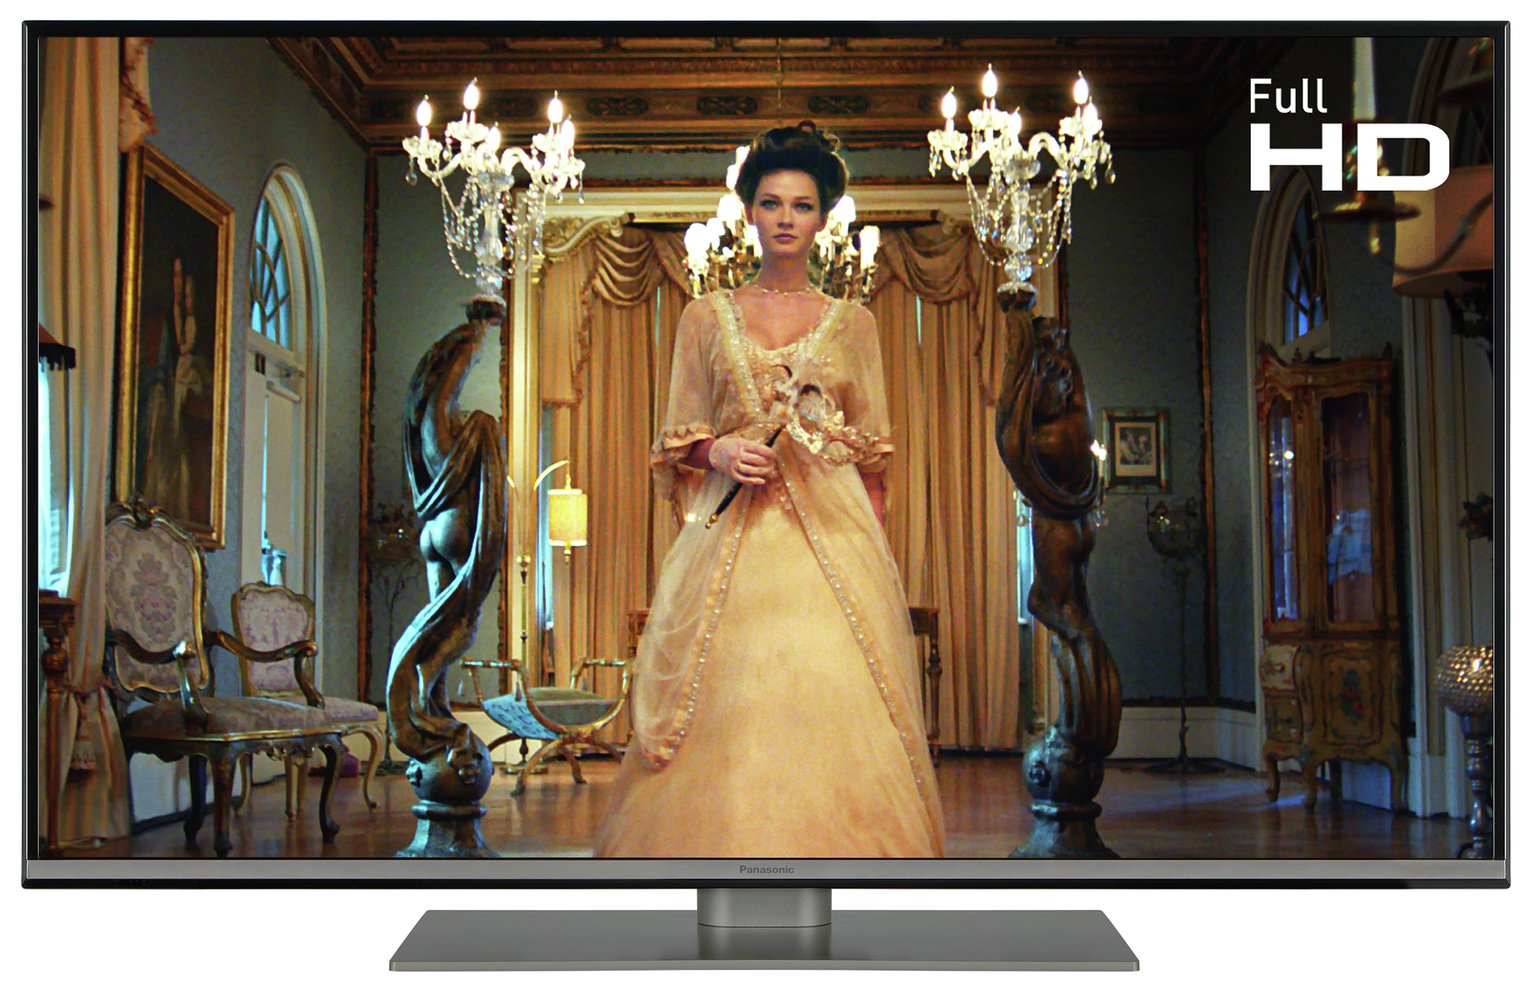 Panasonic 43 Inch TX-43FS352B Smart Full HD TV